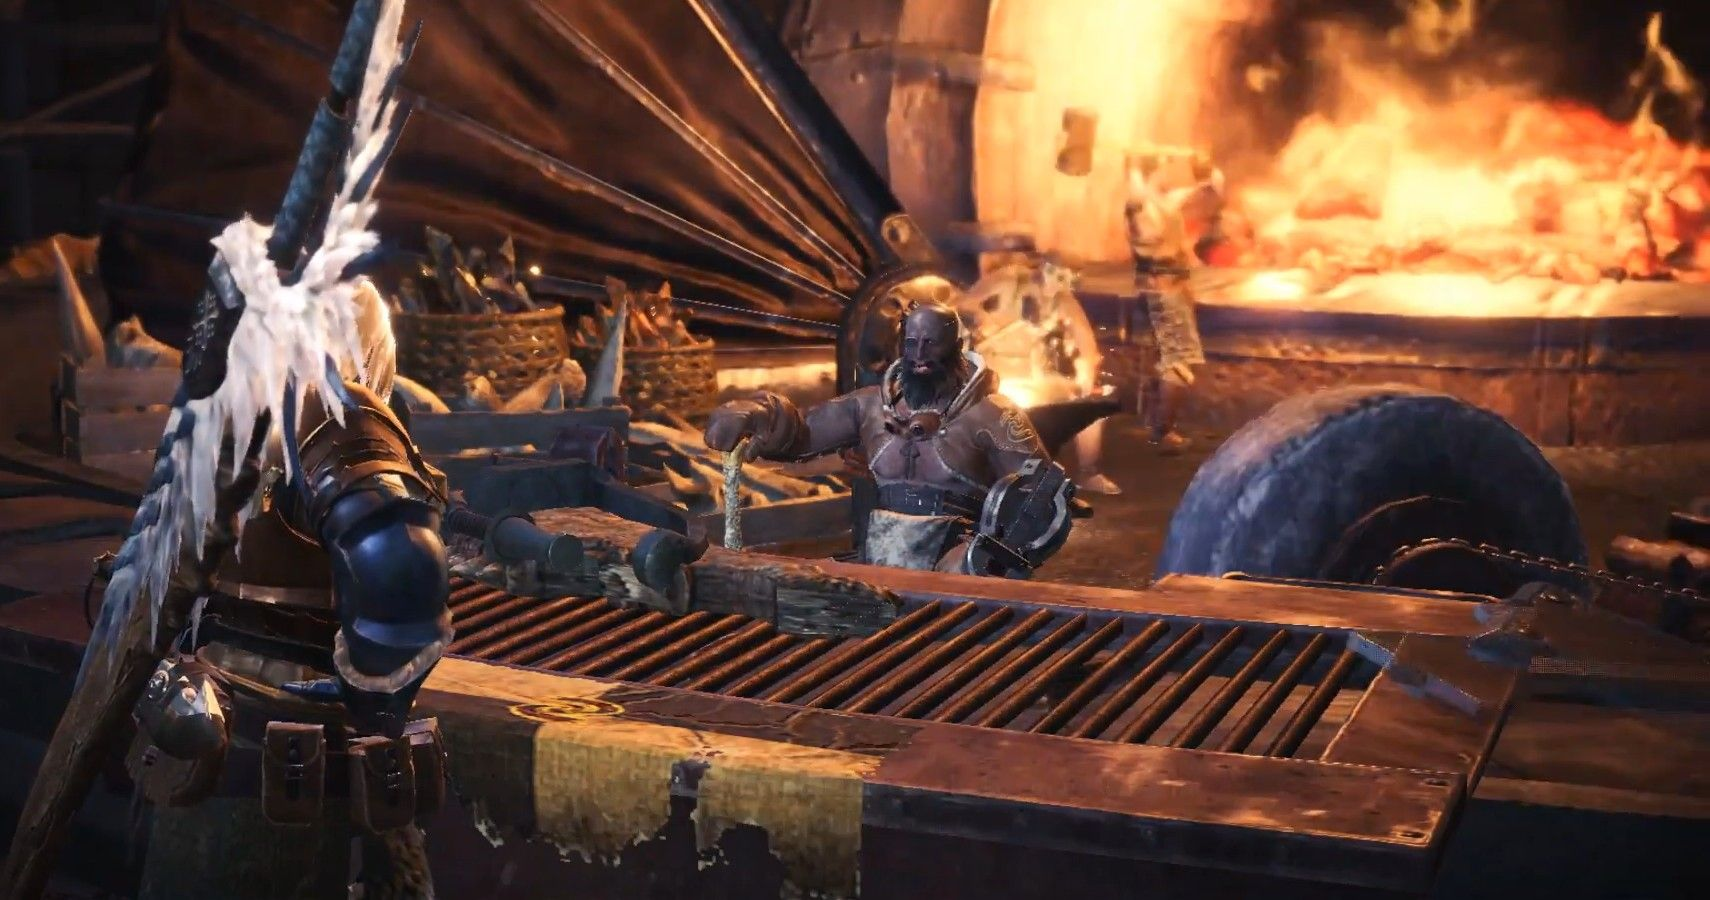 Monster Hunter World Where To Find Warped Bone Thegamer A bone used as crafting material. monster hunter world where to find